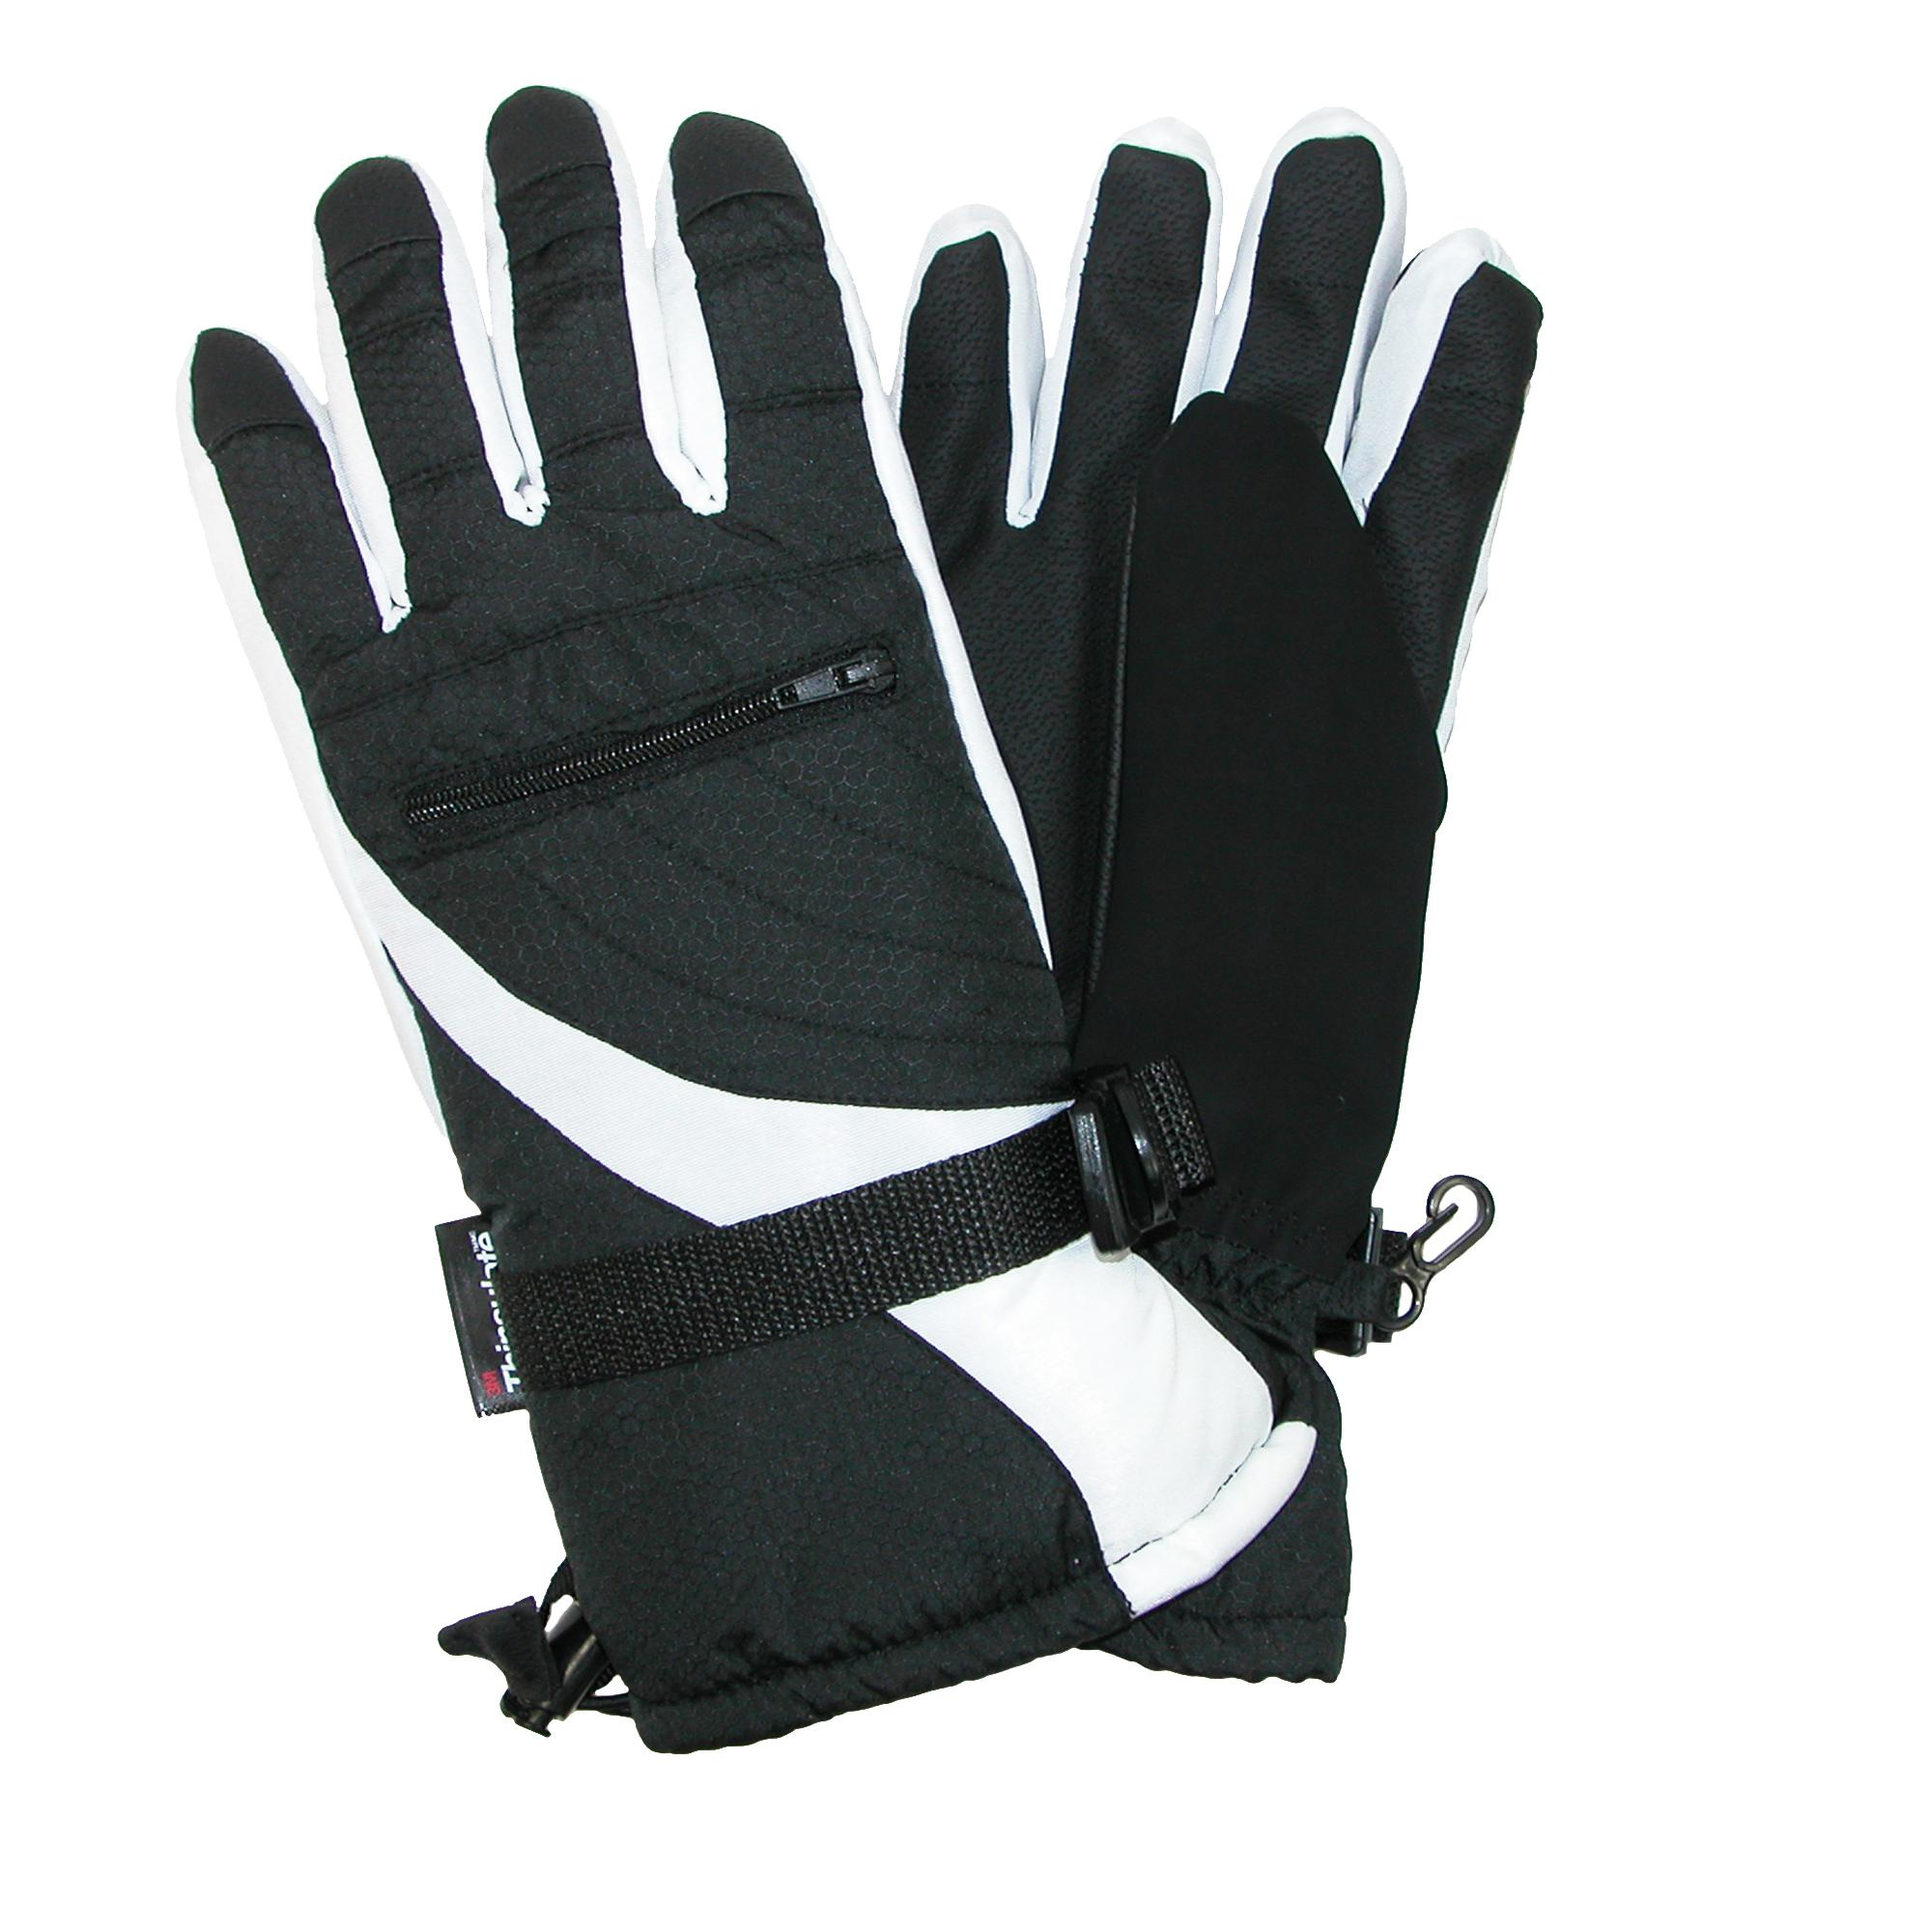 Grand Sierra Womens Bec-tec Waterproof Glove With Zippered Pocket